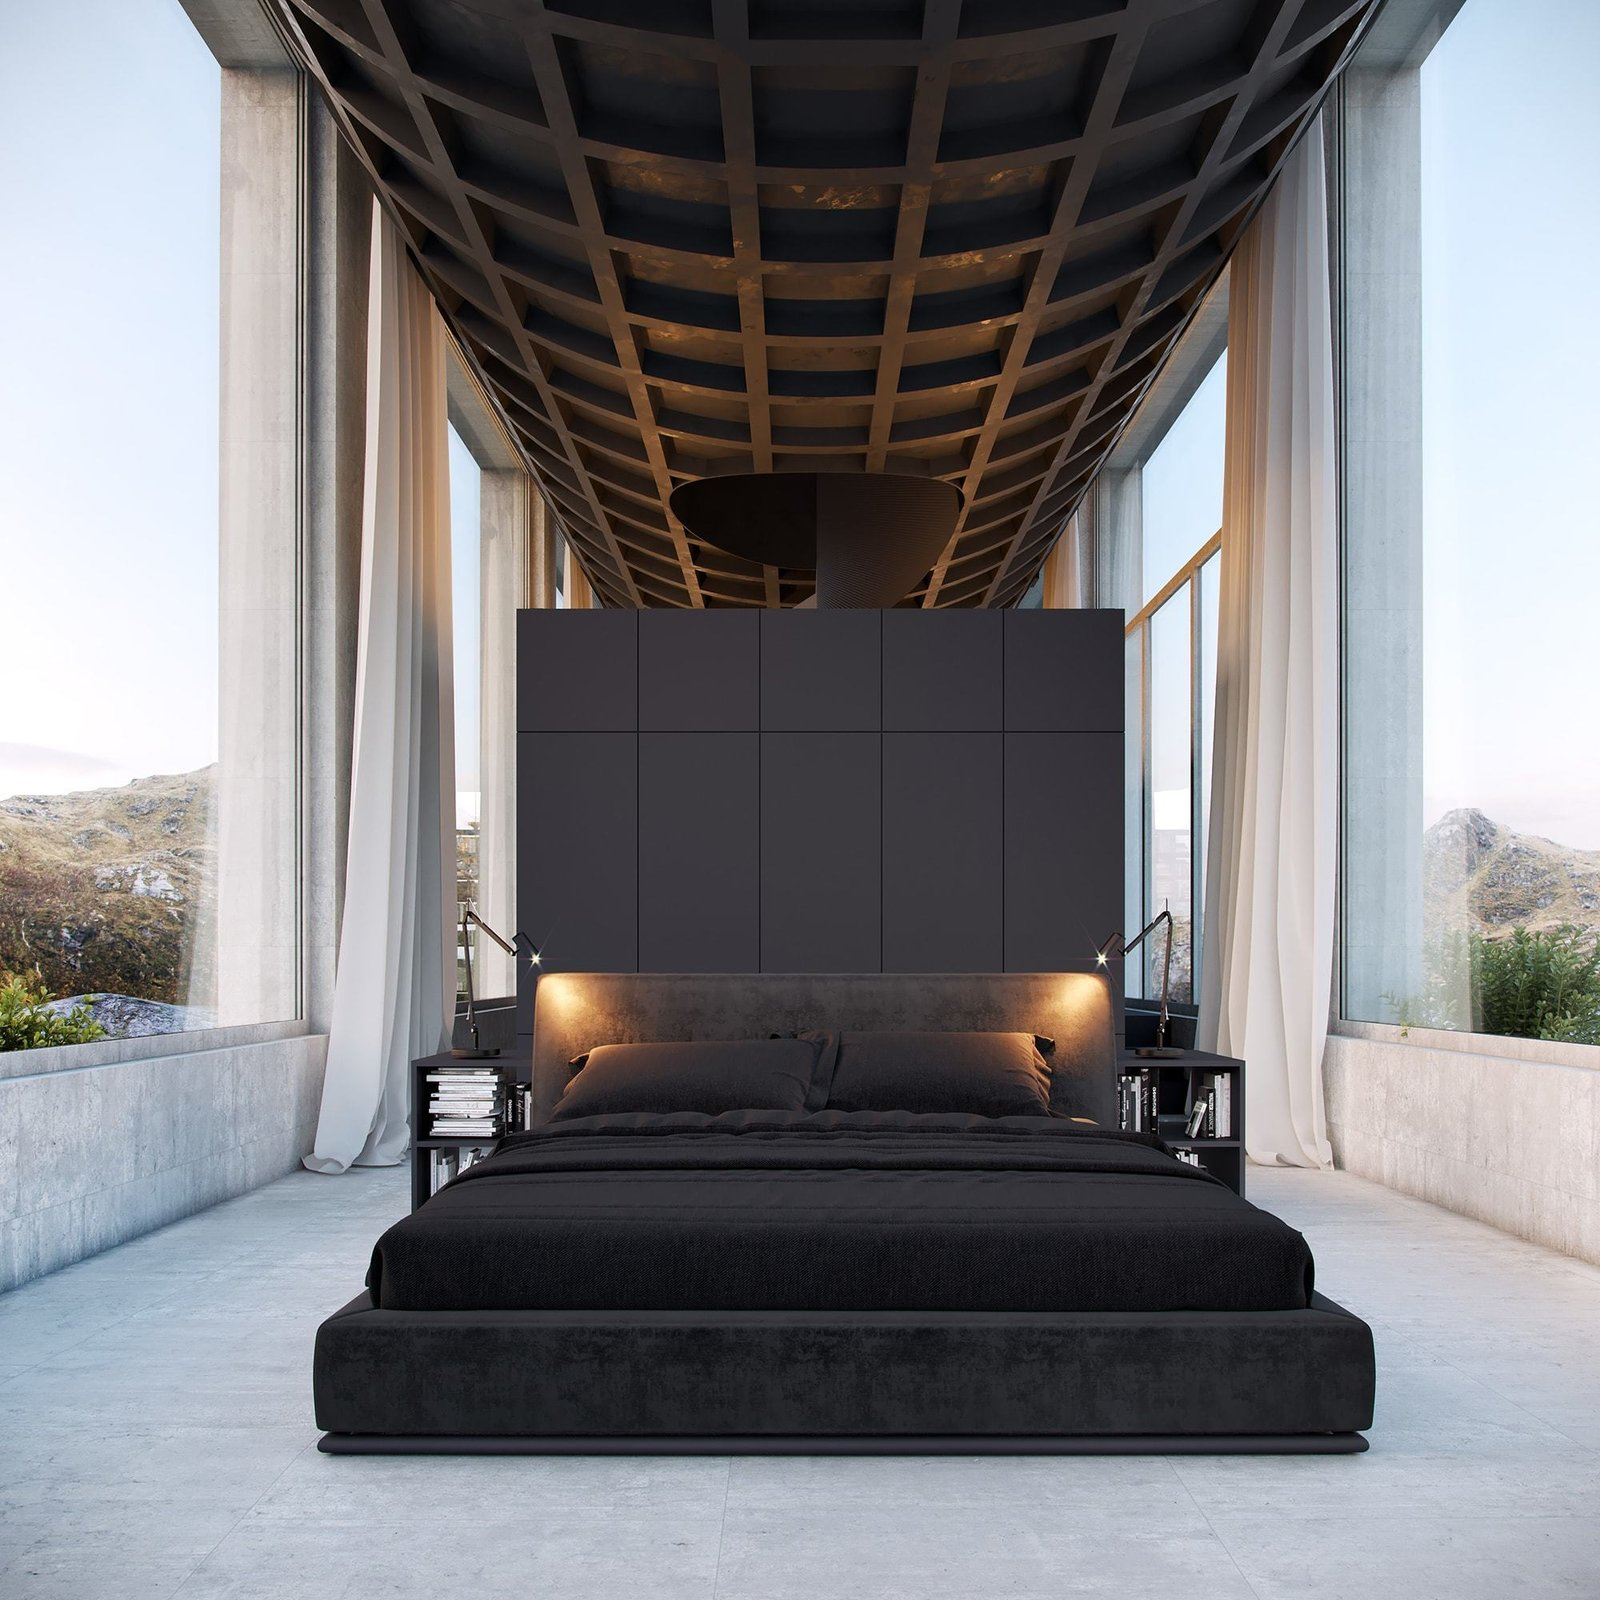 Bedroom Tagged: Bedroom, Bed, Night Stands, Concrete Floor, and Table Lighting.  Infinity House by Vladimir Konovalov